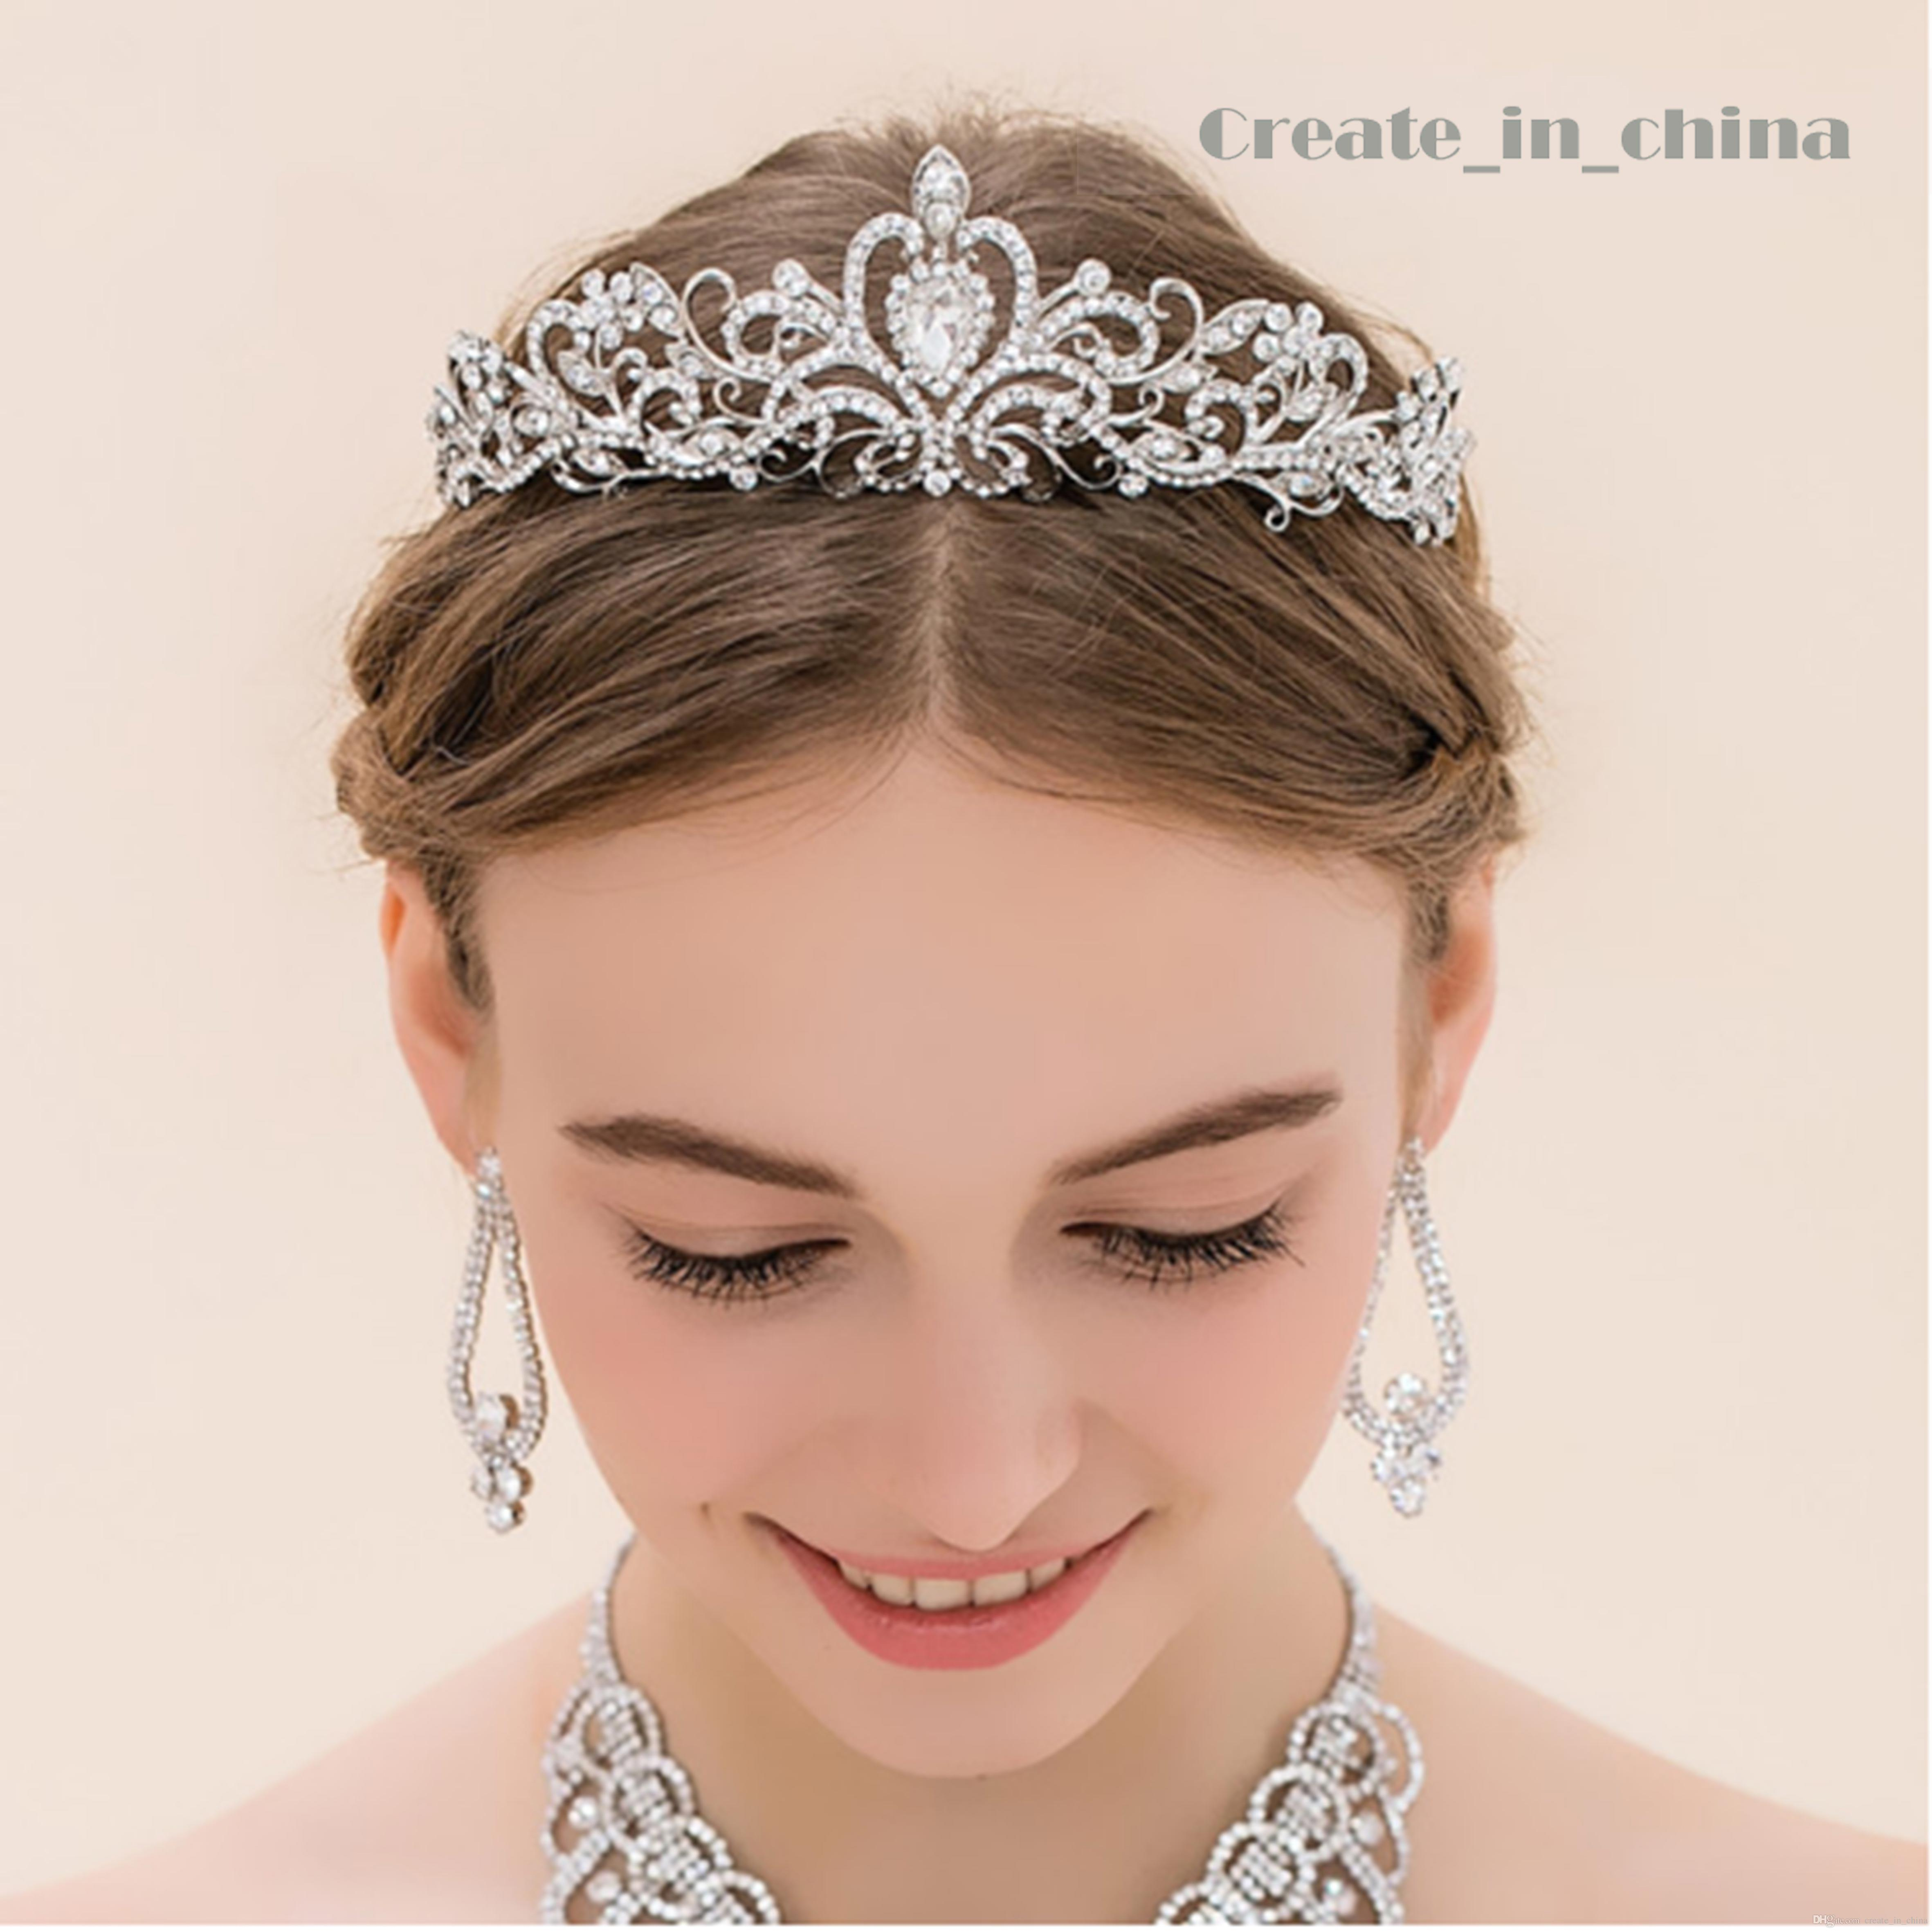 Hair accessories wedding cheap - 2016 Vintage Crystal Tiara Bridal Hair Accessories For Wedding Quinceanera Tiaras And Crowns Pageant Rhinestone Crown Full Crystal C1001 Tiaras Crowns